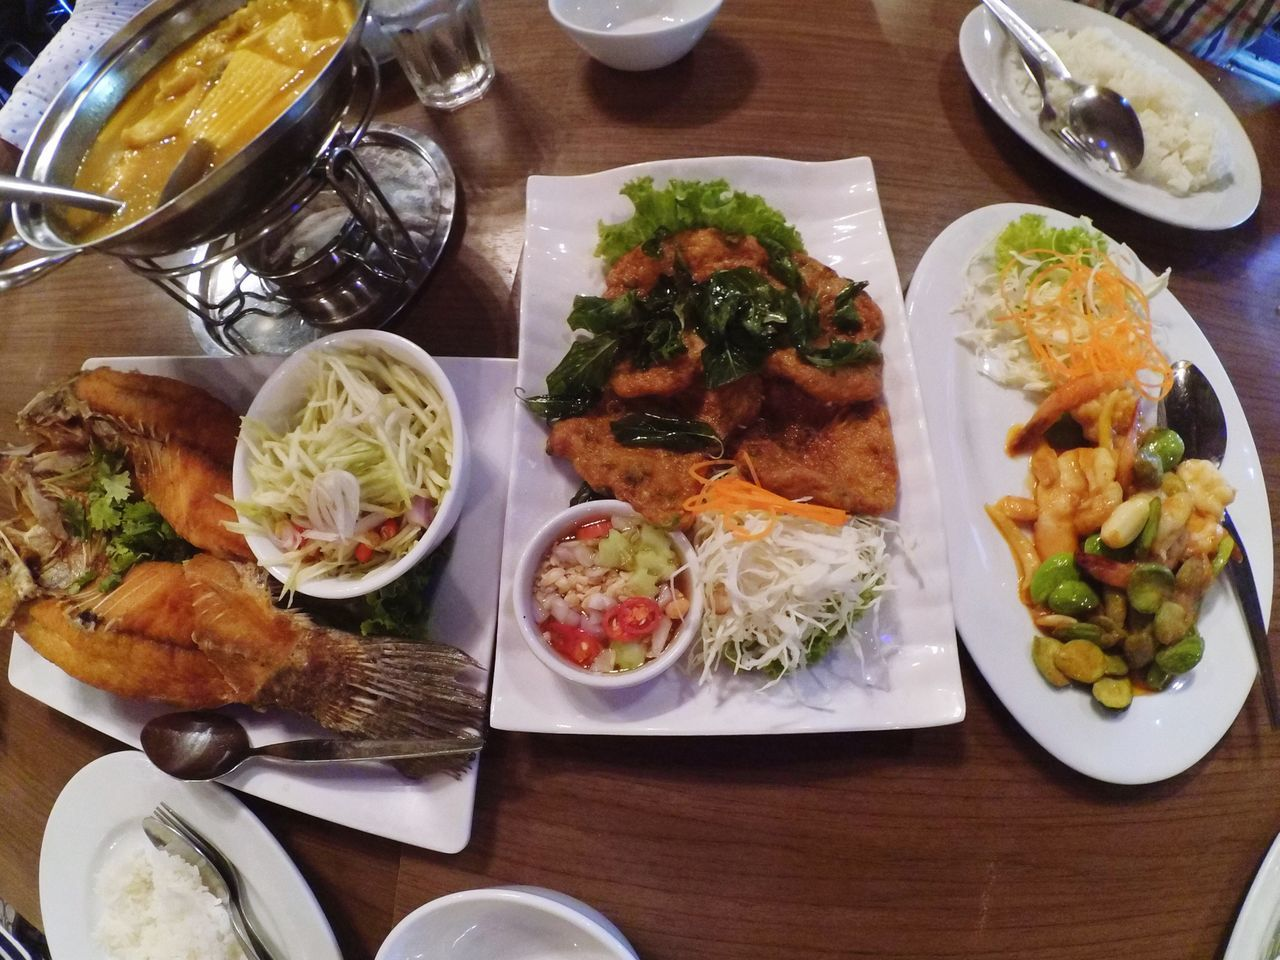 food and drink, plate, food, ready-to-eat, table, freshness, serving size, indoors, healthy eating, indulgence, bowl, meal, drinking glass, fork, no people, close-up, day